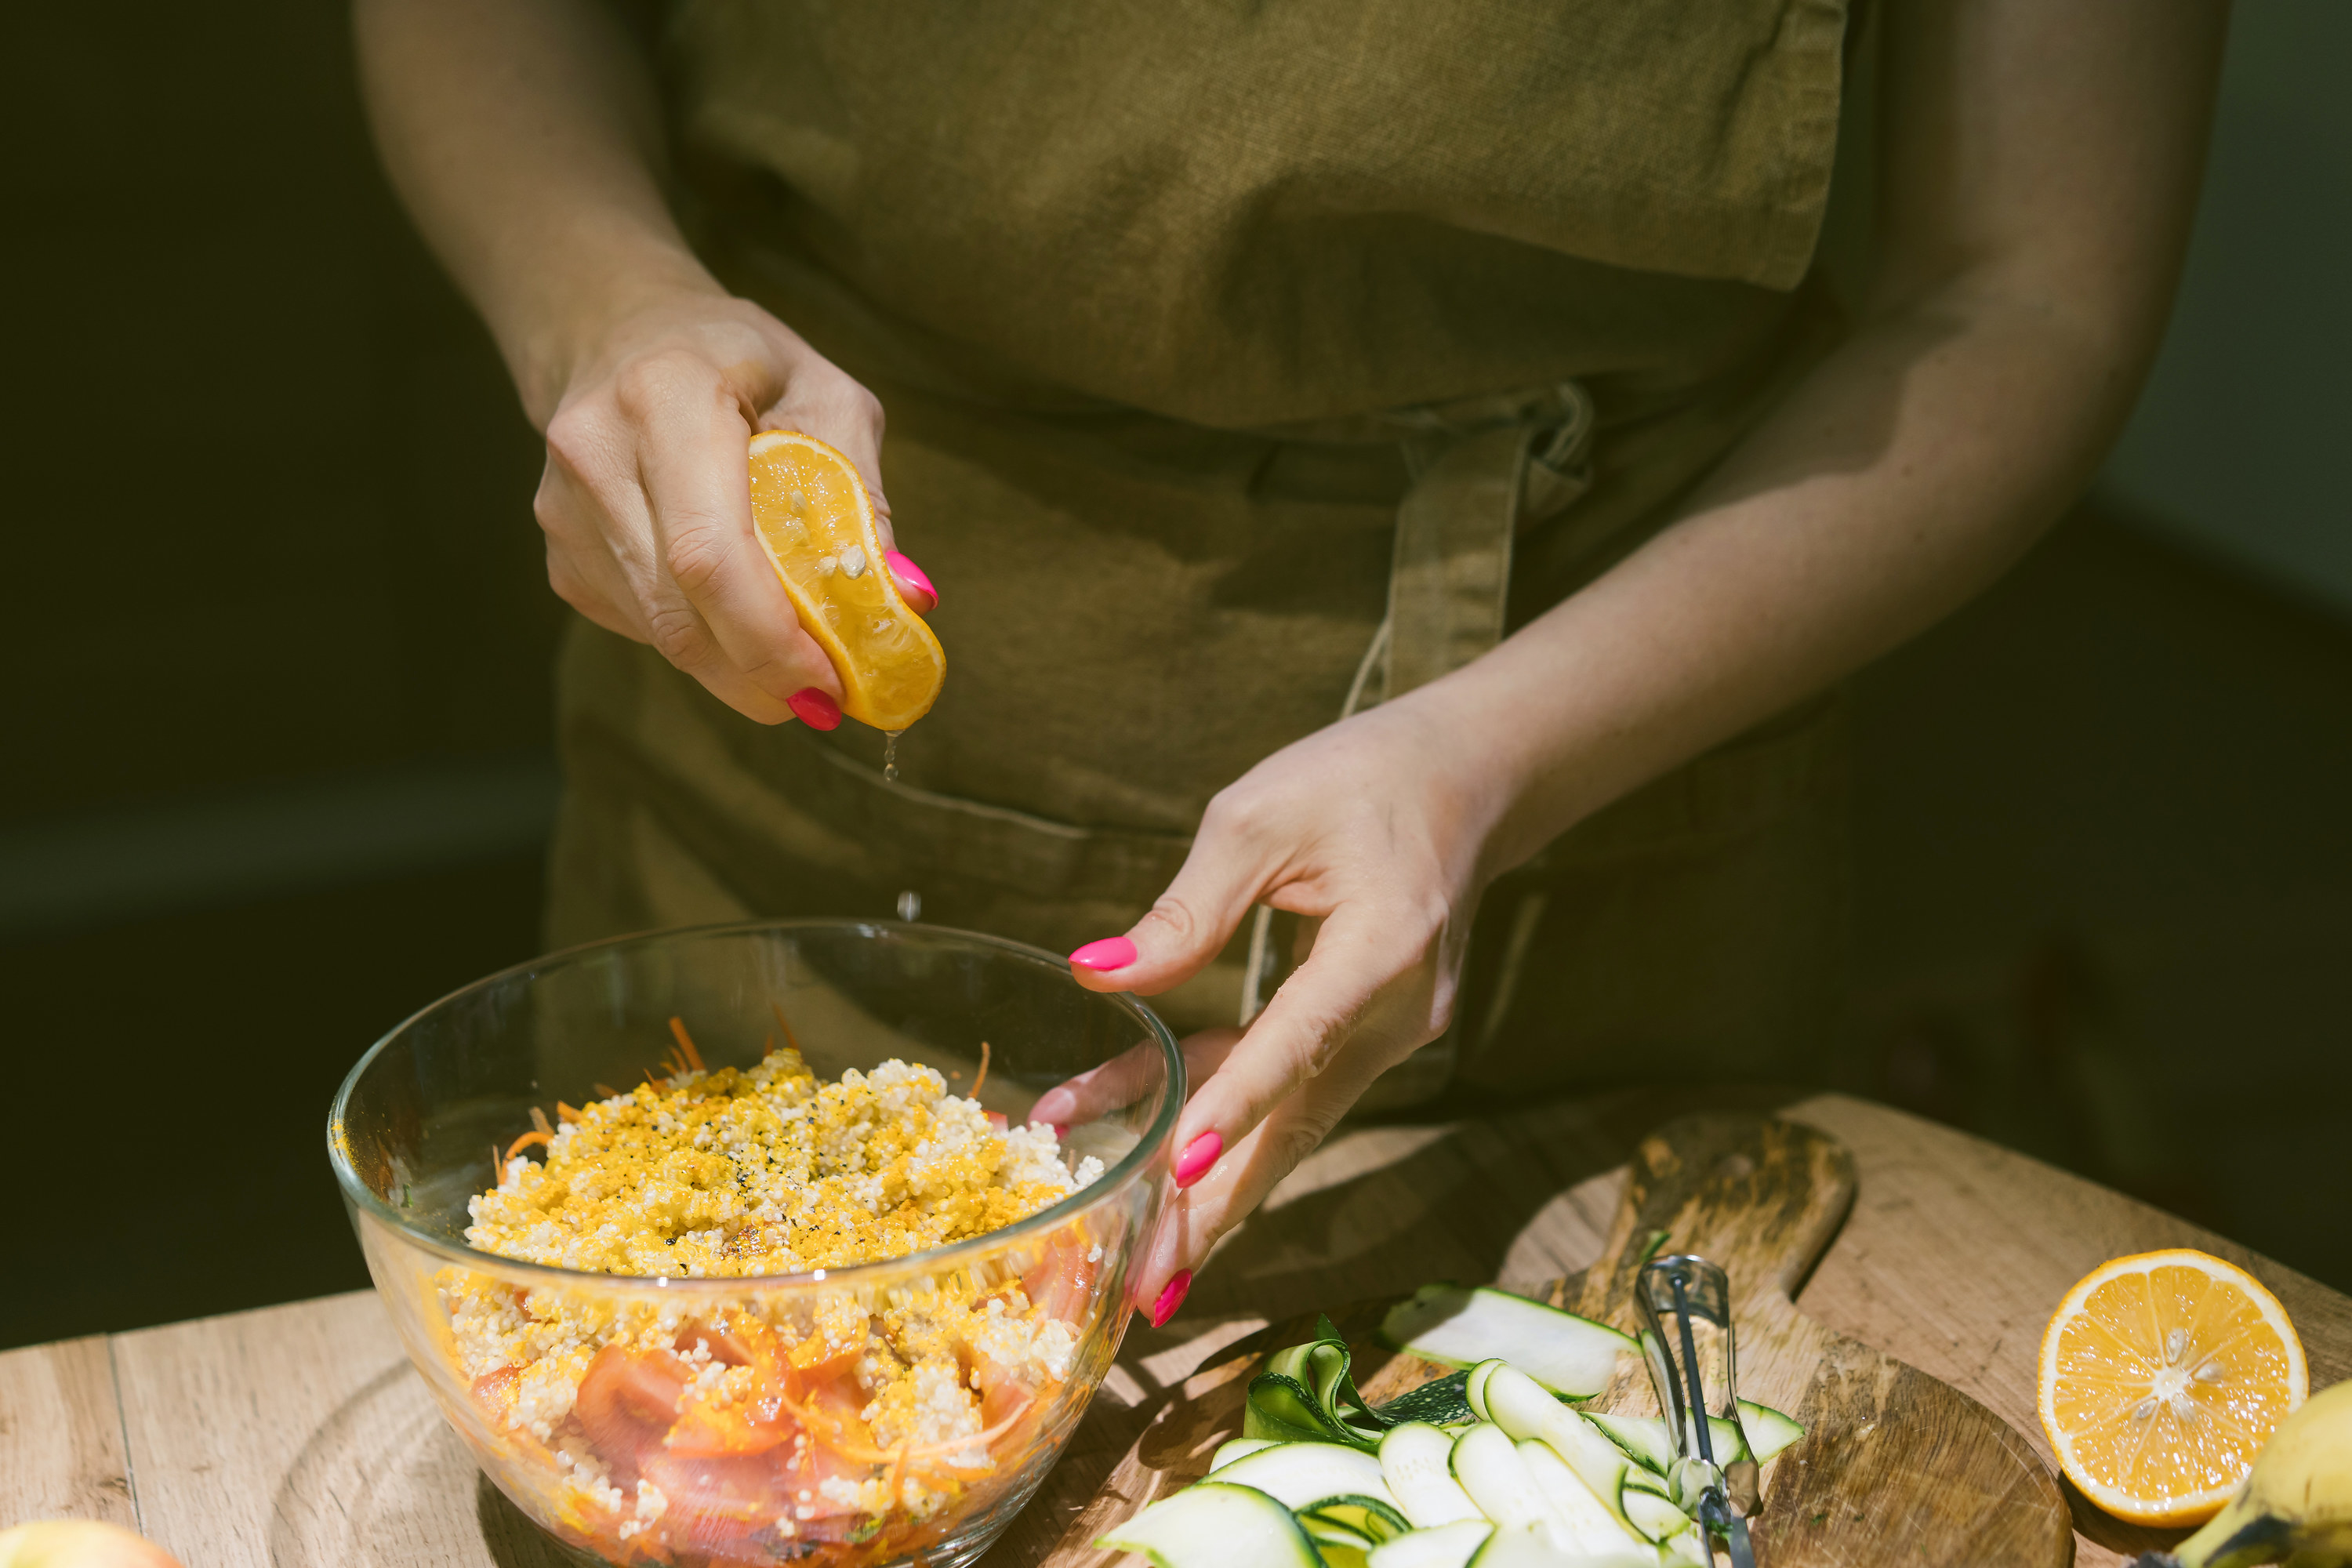 Hands squeezing lemon juice on a vegetarian salad of quinoa, tomato, carrot and spices